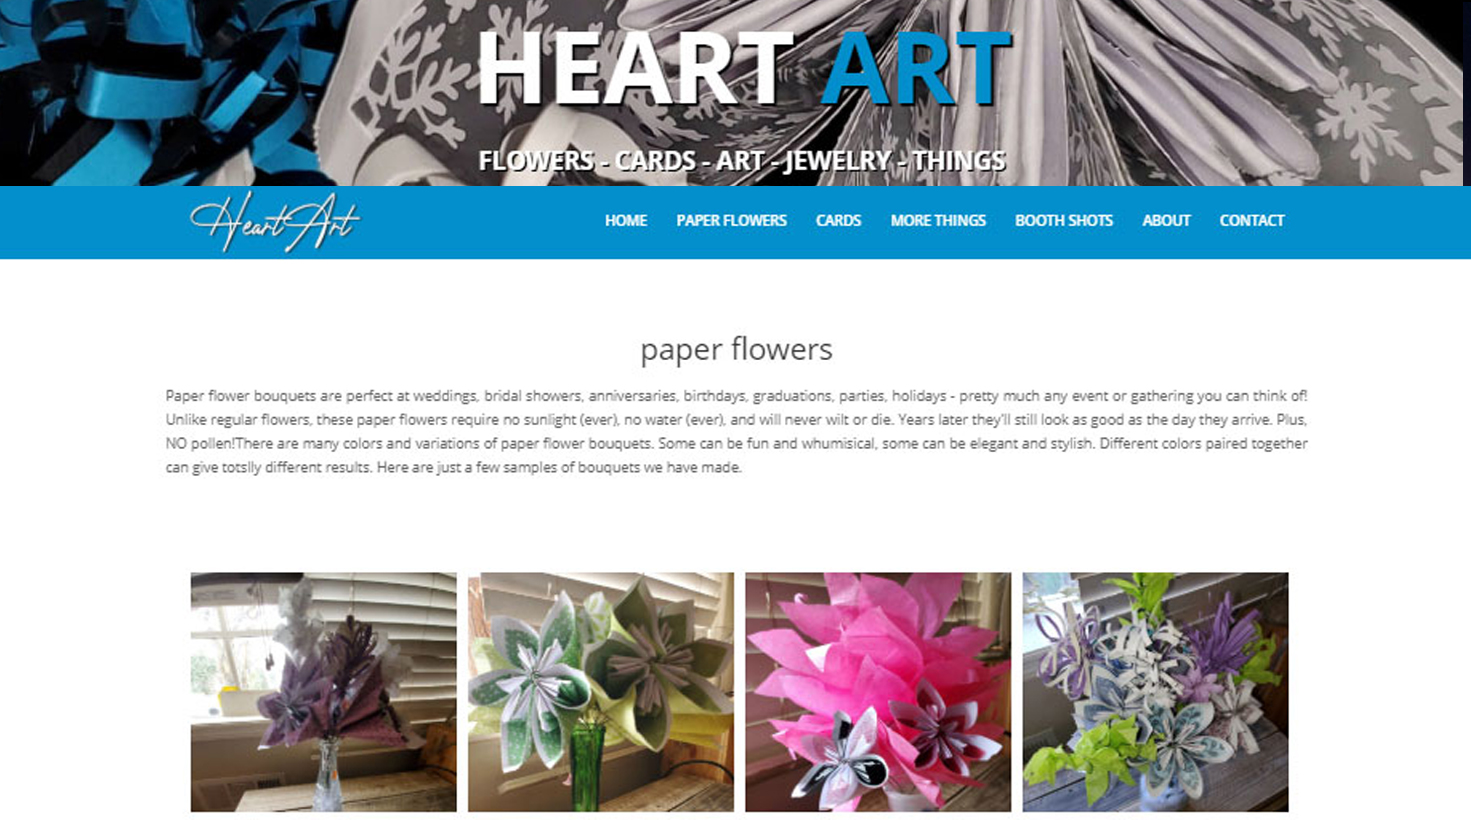 An full-blown, responsive website for my real-life art endeavors. Didn't know I can make cool things with my hands? I can... You can view the entire site (and cool handmade things) here: <a href='http://heartart.ga'>HeartArt.ga</a>